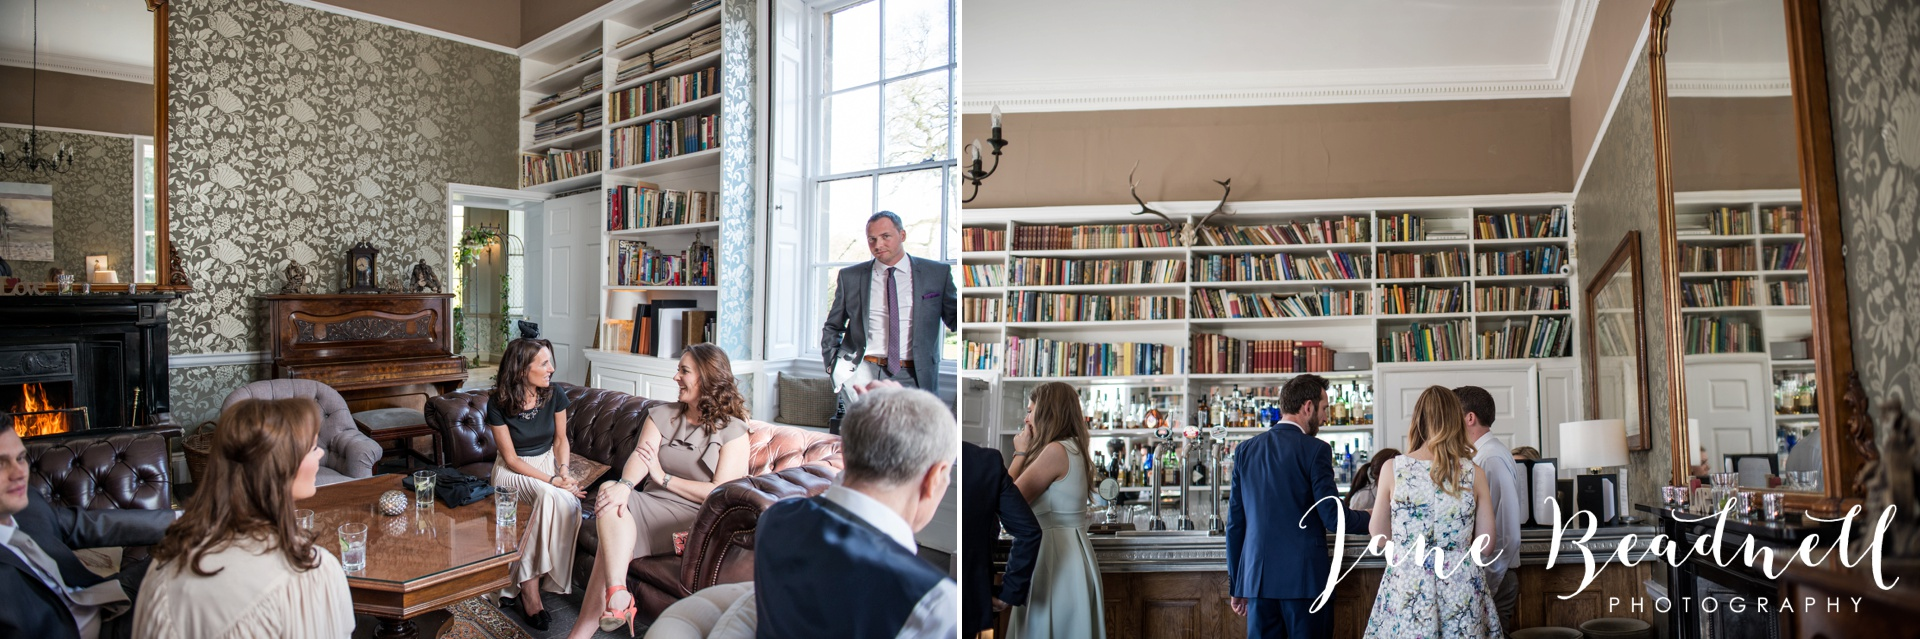 Middleton Lodge wedding photography by fine art wedding photographer Jane Beadnell_0079